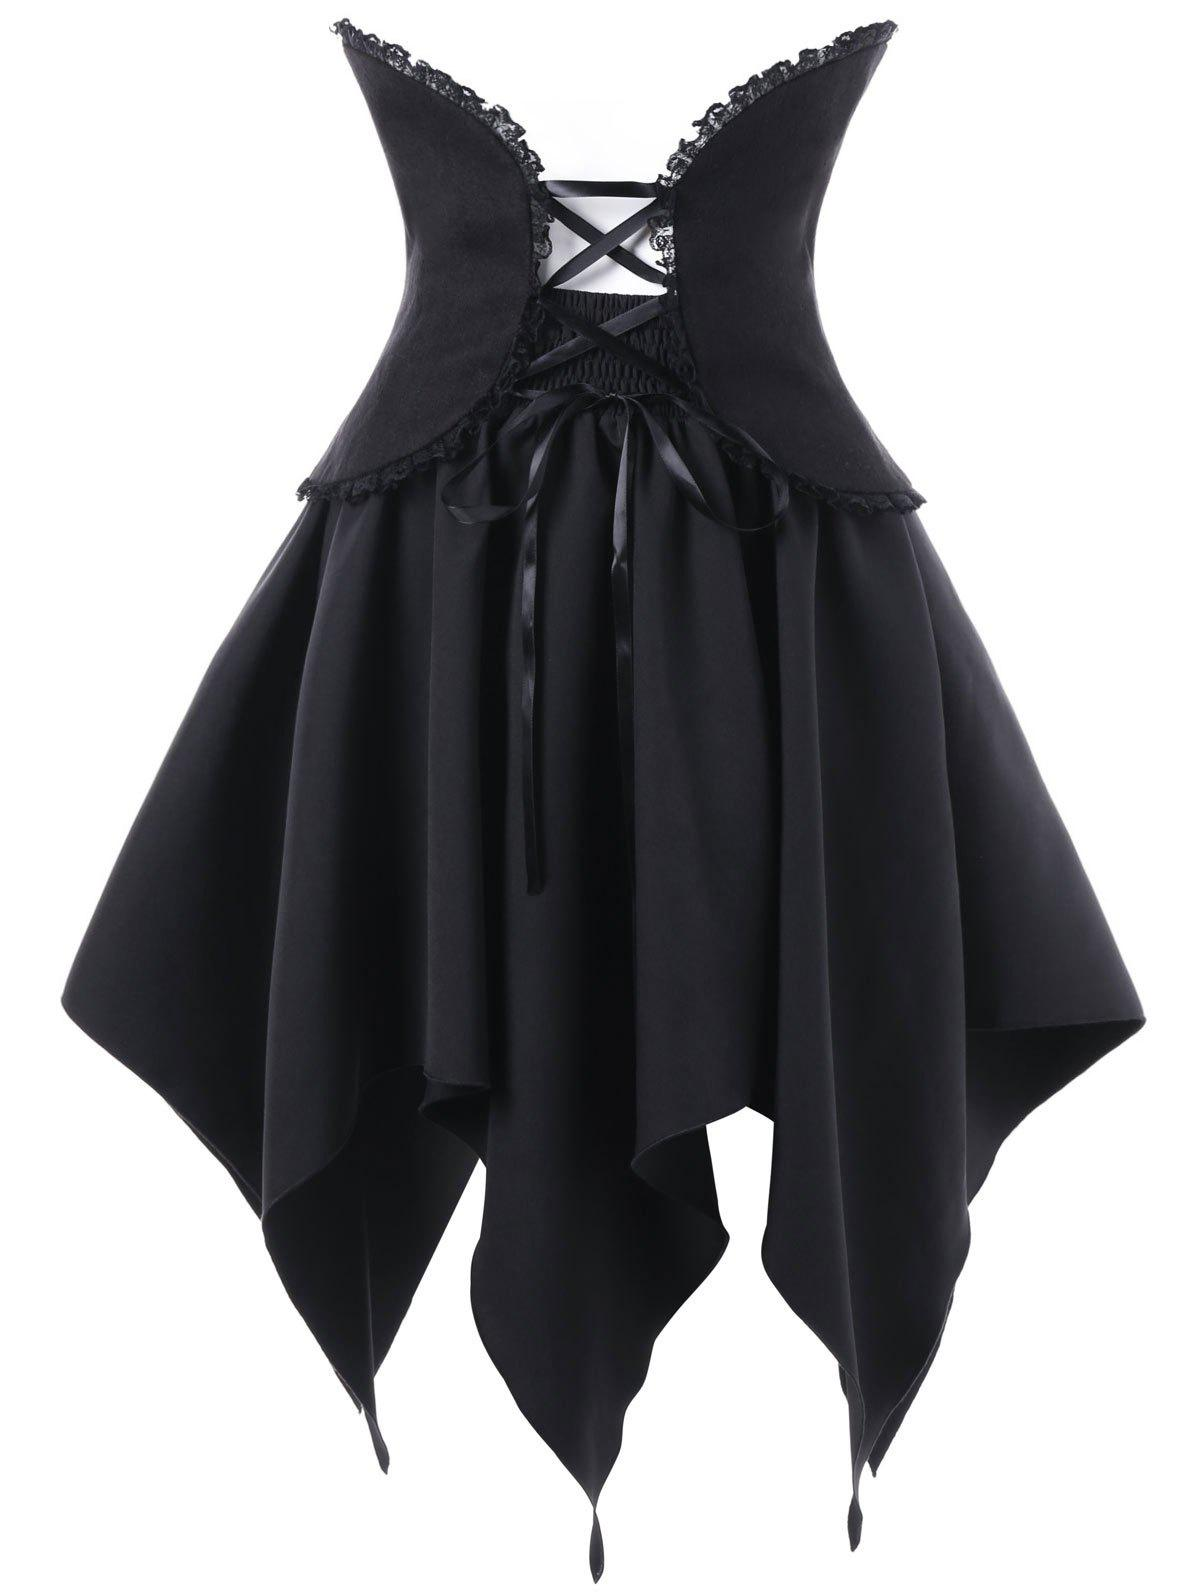 Halloween Lace Up Handerchief Skirt with Corset CummerbundWOMEN<br><br>Size: M; Color: BLACK; Material: Polyester; Length: Mini; Silhouette: A-Line; Pattern Type: Solid; Embellishment: Lace; Season: Fall,Spring; Weight: 0.4100kg; Package Contents: 1 x Skirt  1 x Belt;